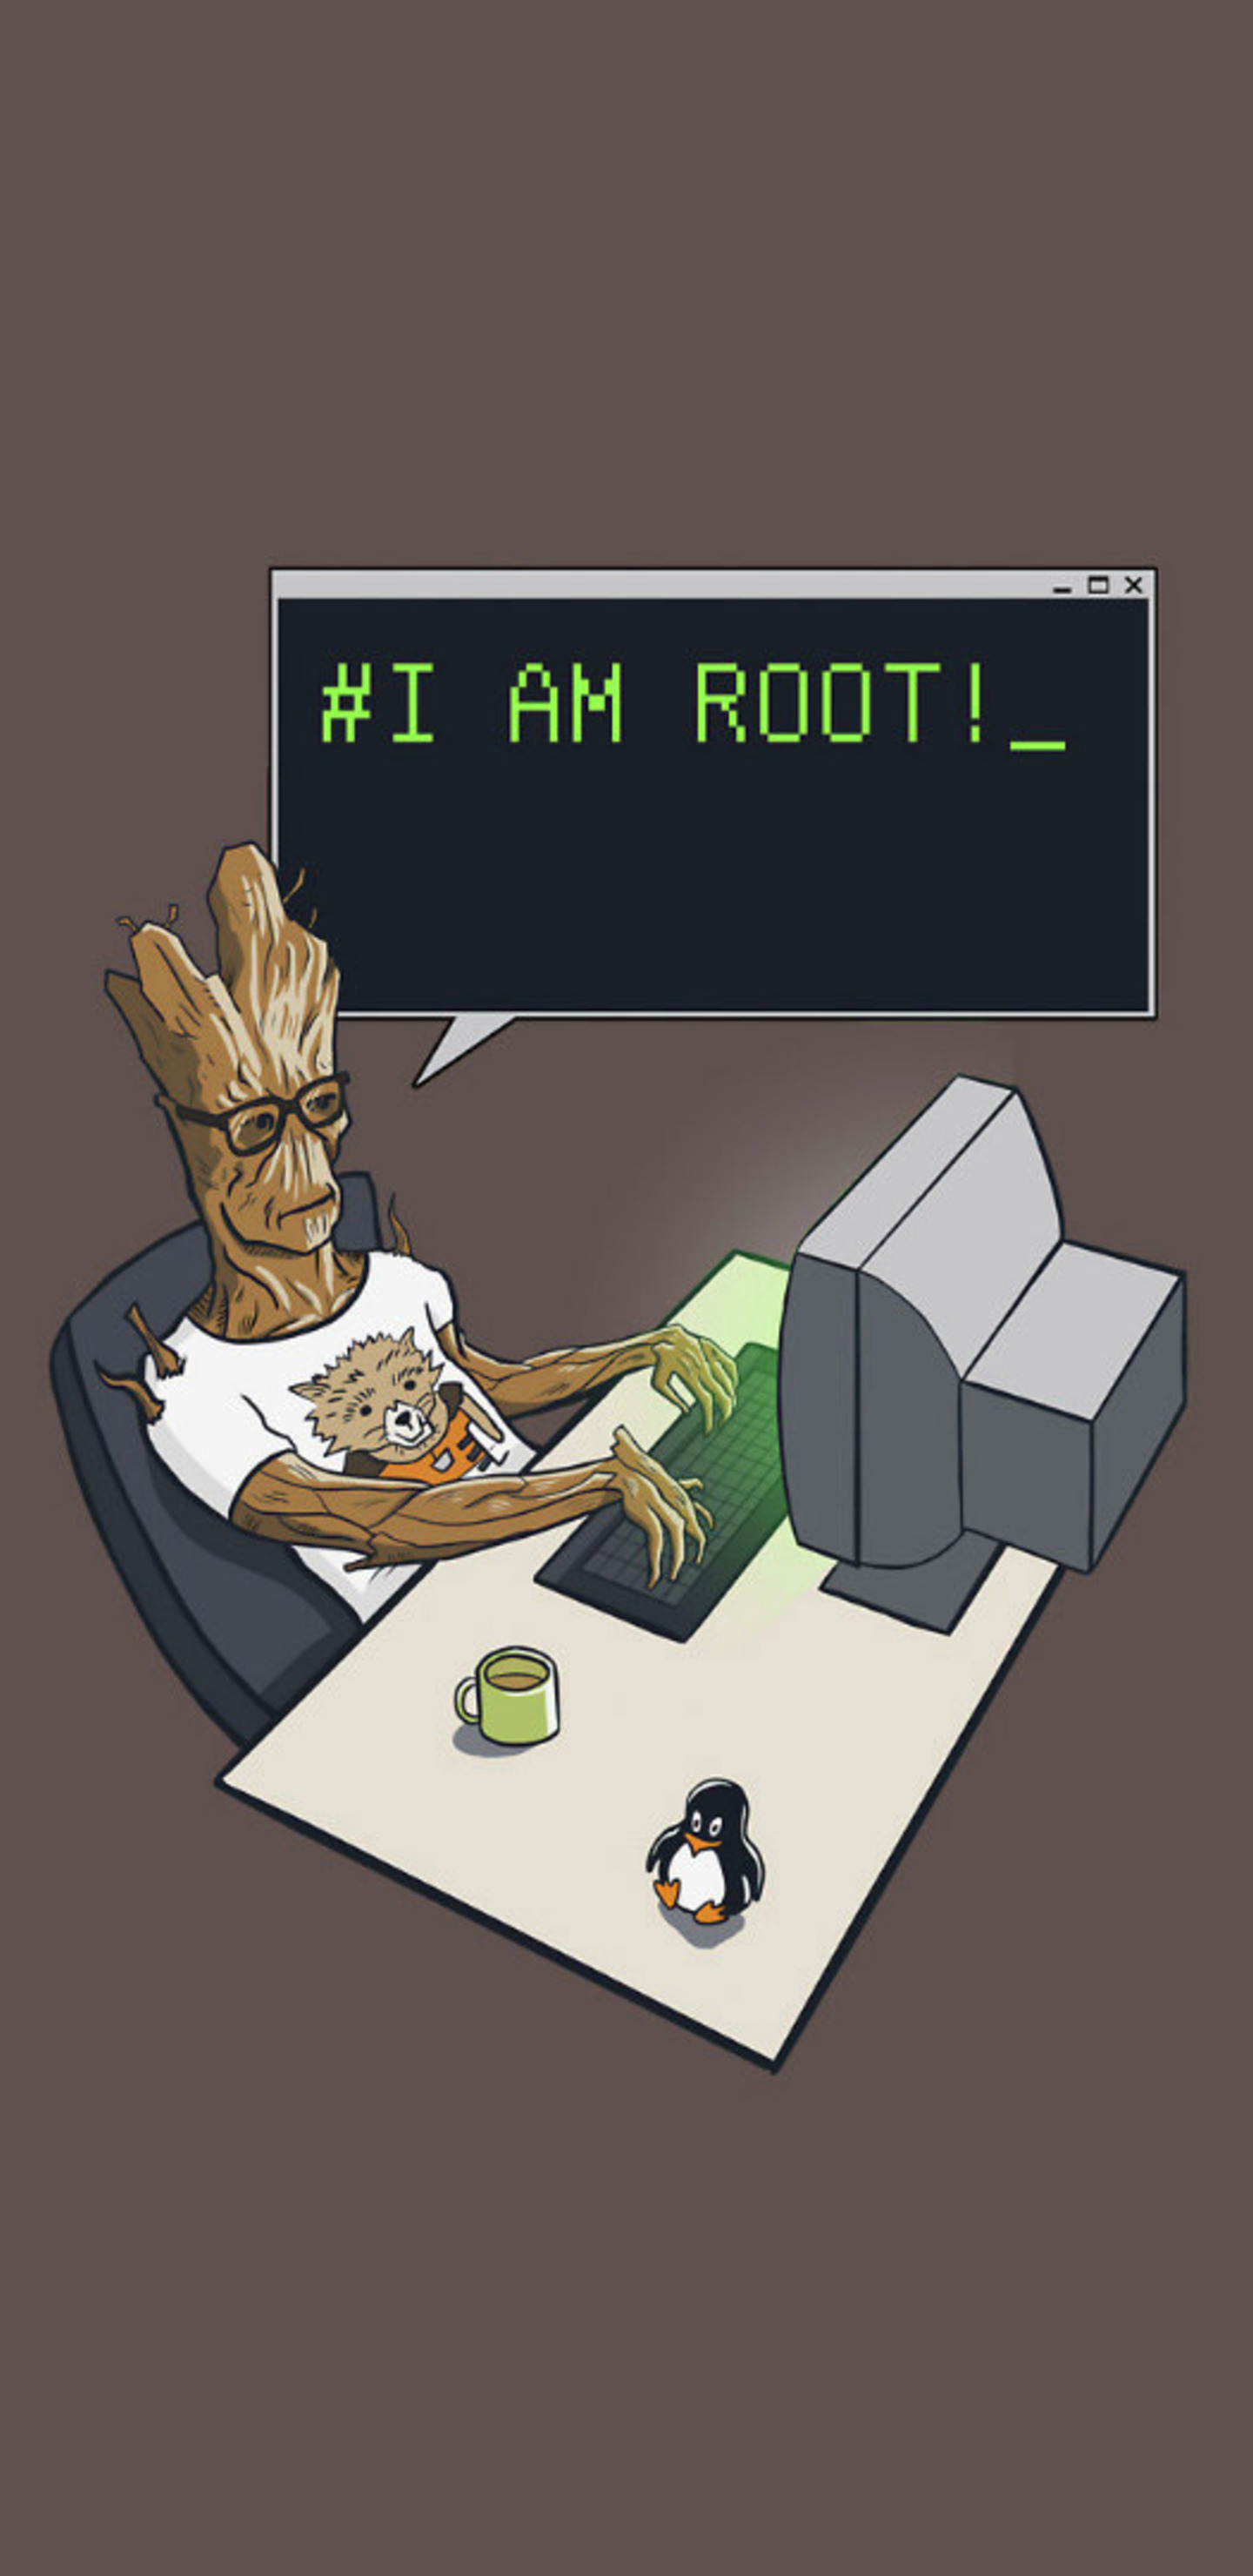 1440x2960 Groot I Am Root Samsung Galaxy Note 9,8, S9,S8,S8+